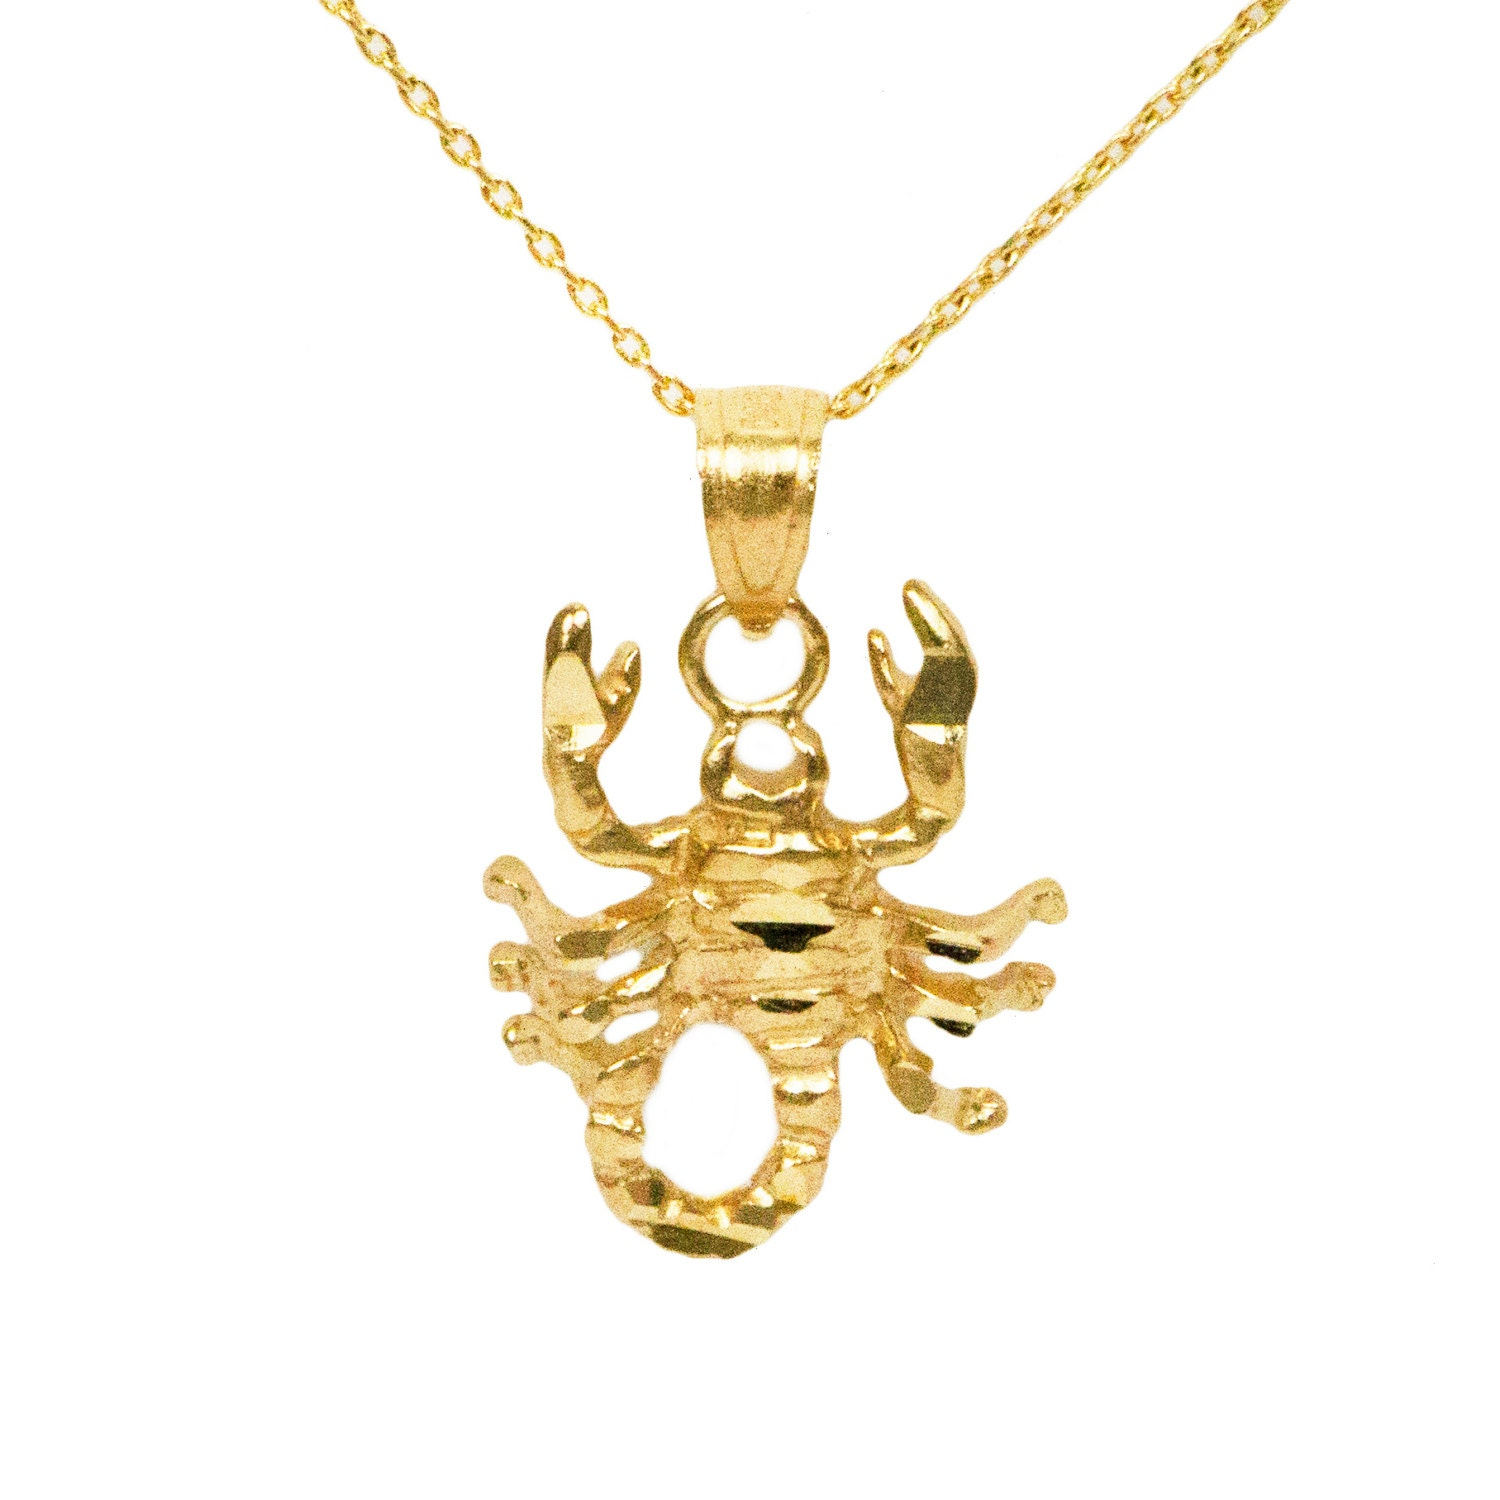 10k yellow gold scorpion necklace